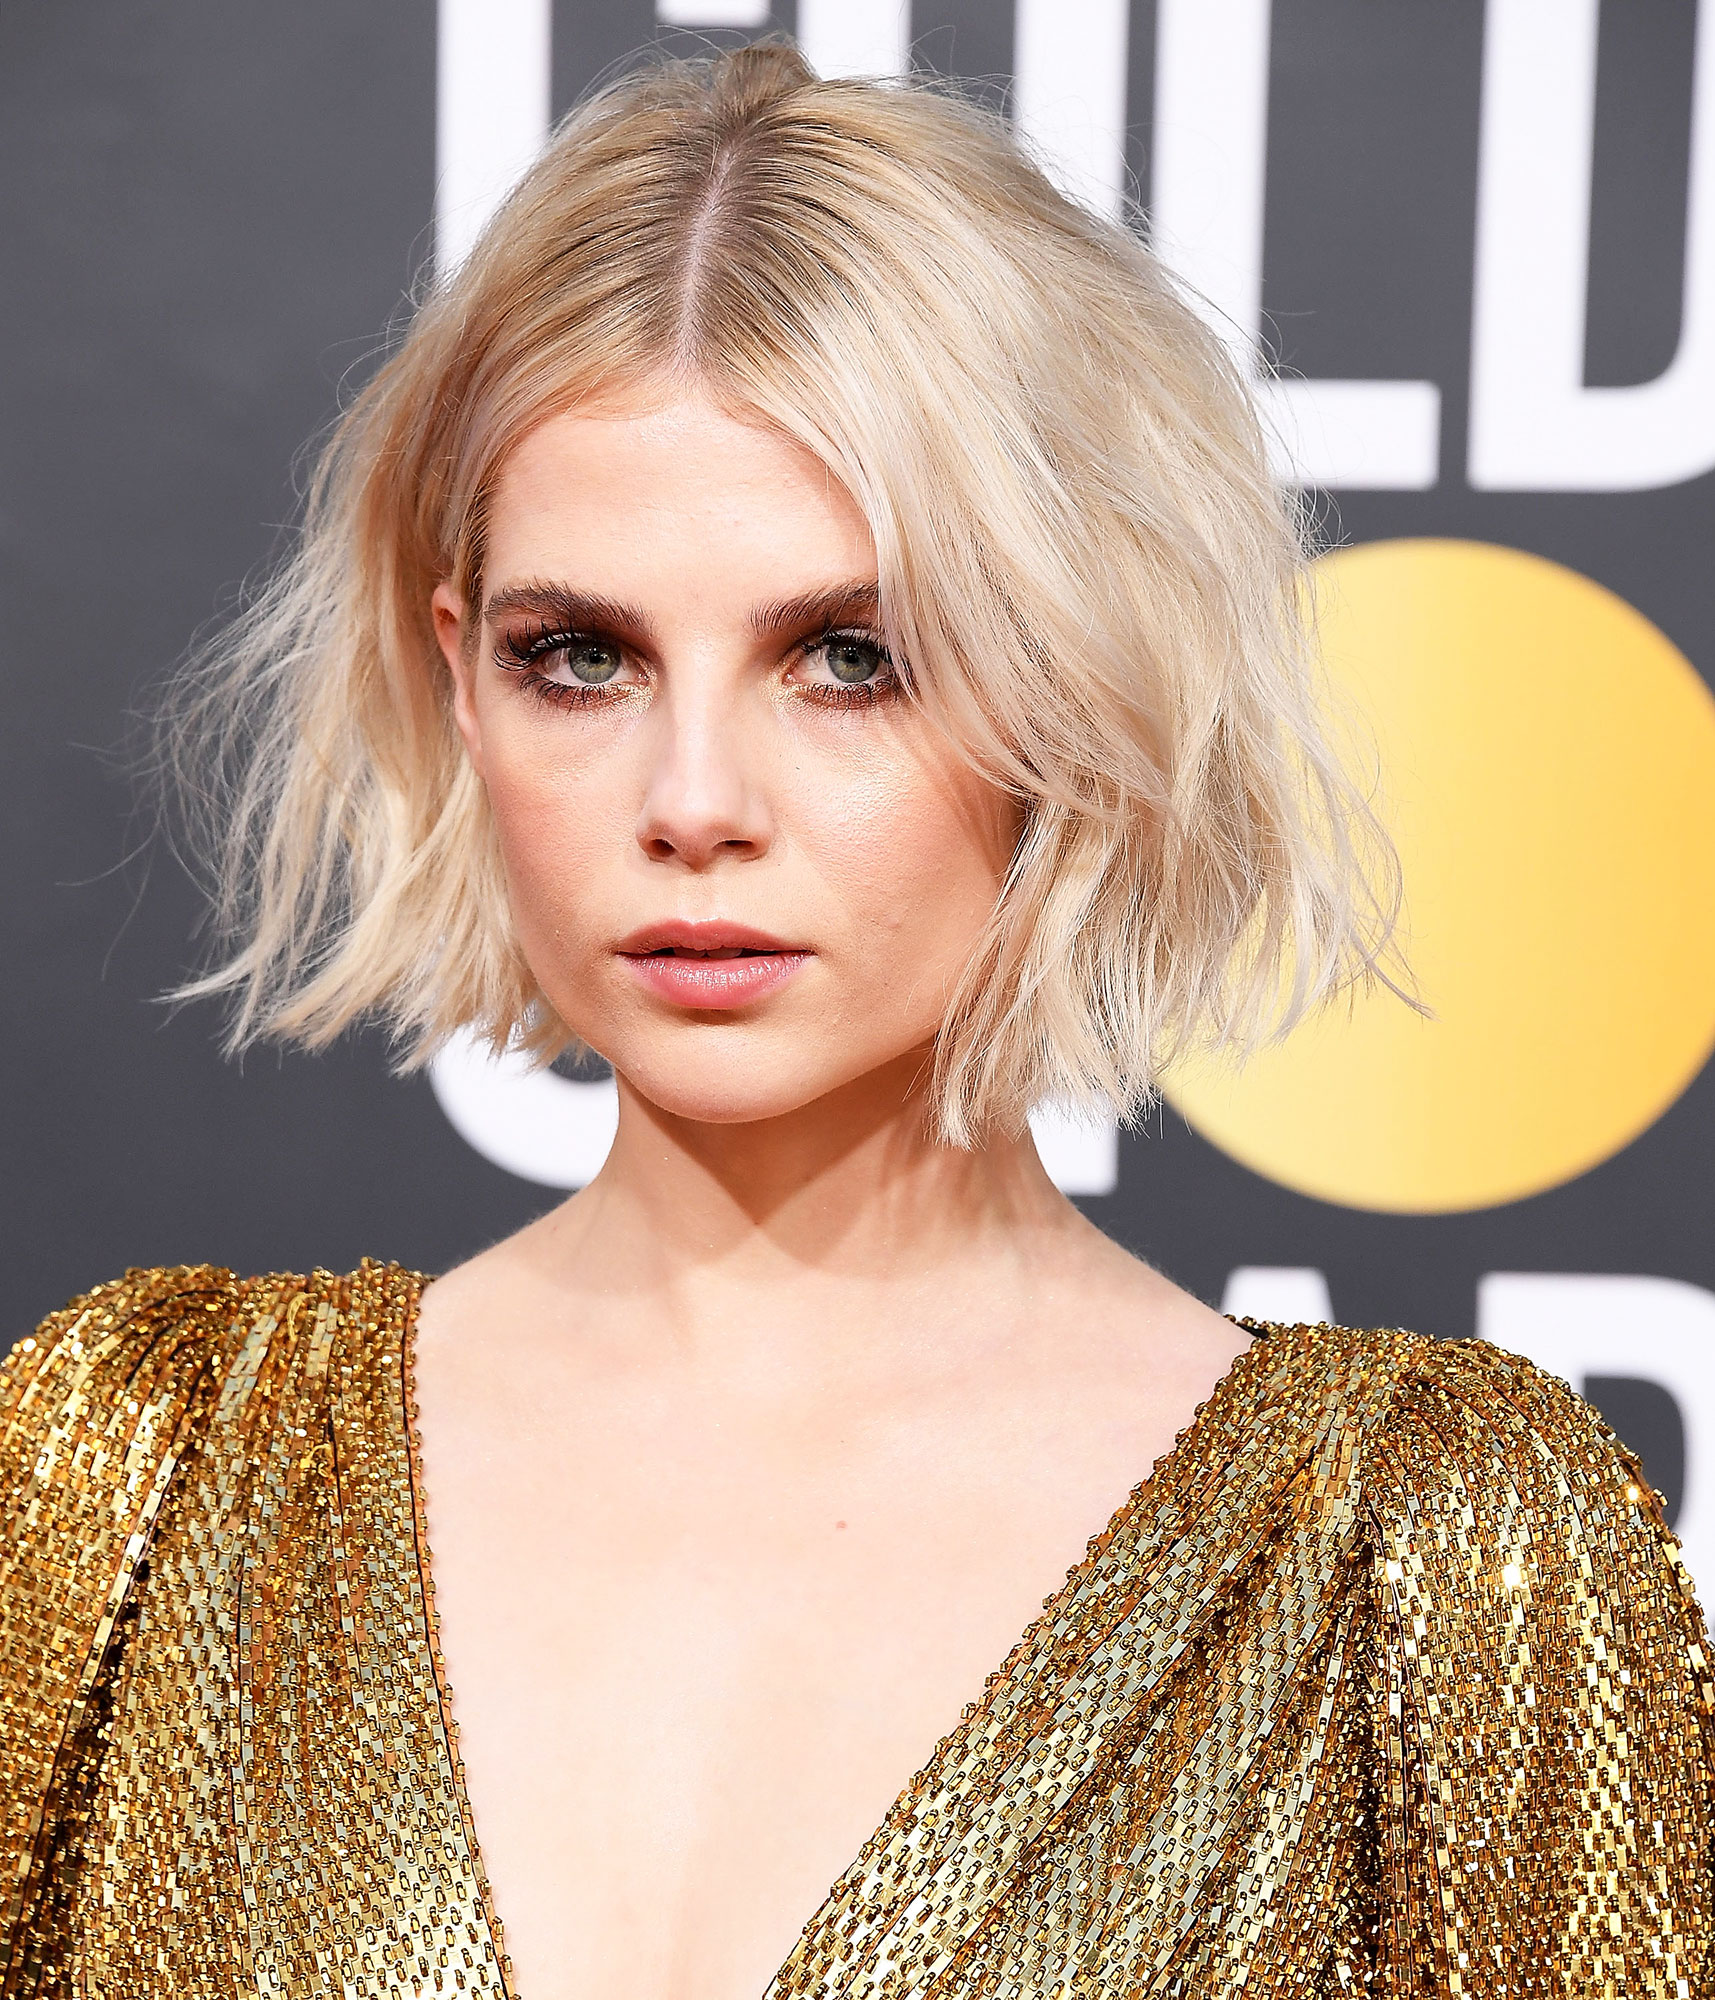 Lucy Boynton - The Bohemian Rhapsody actress proved at the Golden Globes that the combo of good hair and great lashes is all you need to be bonafide beauty star. Celeb mane woman Jenny Cho added a bit of undone texture to the platinum chin-length style using Suave products (we recommend the Refresh & Revive Dry Shampoo to boost body).